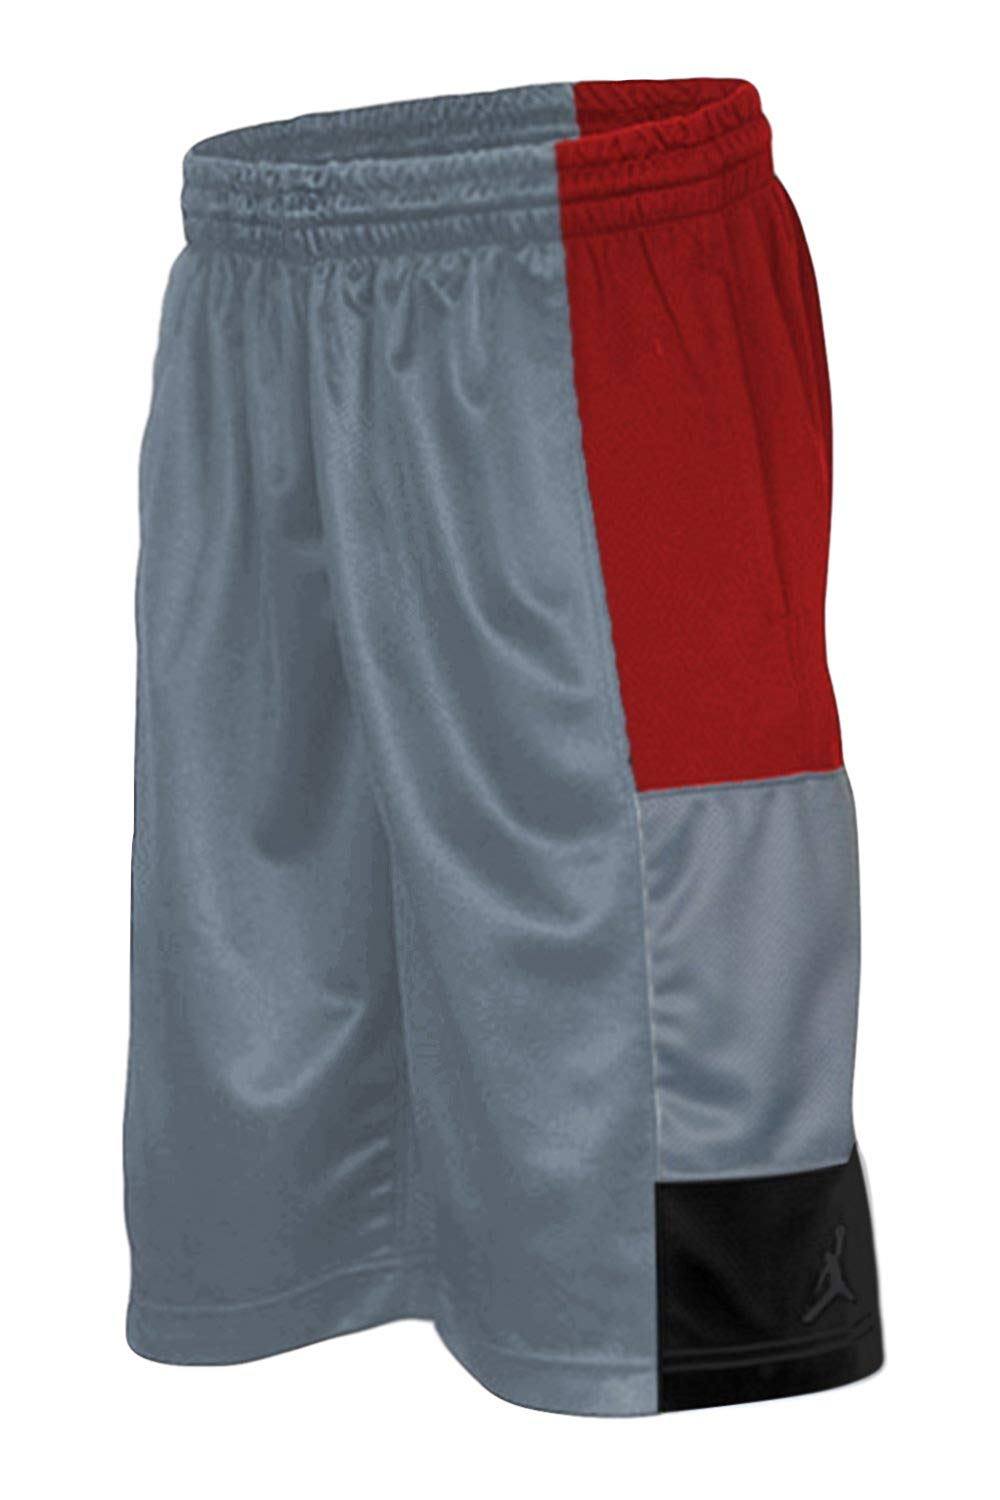 100f4029c0f Get Quotations · Boys' Jordan Trillionaire Basketball Shorts, Cool Grey,  Black, Red, Medium